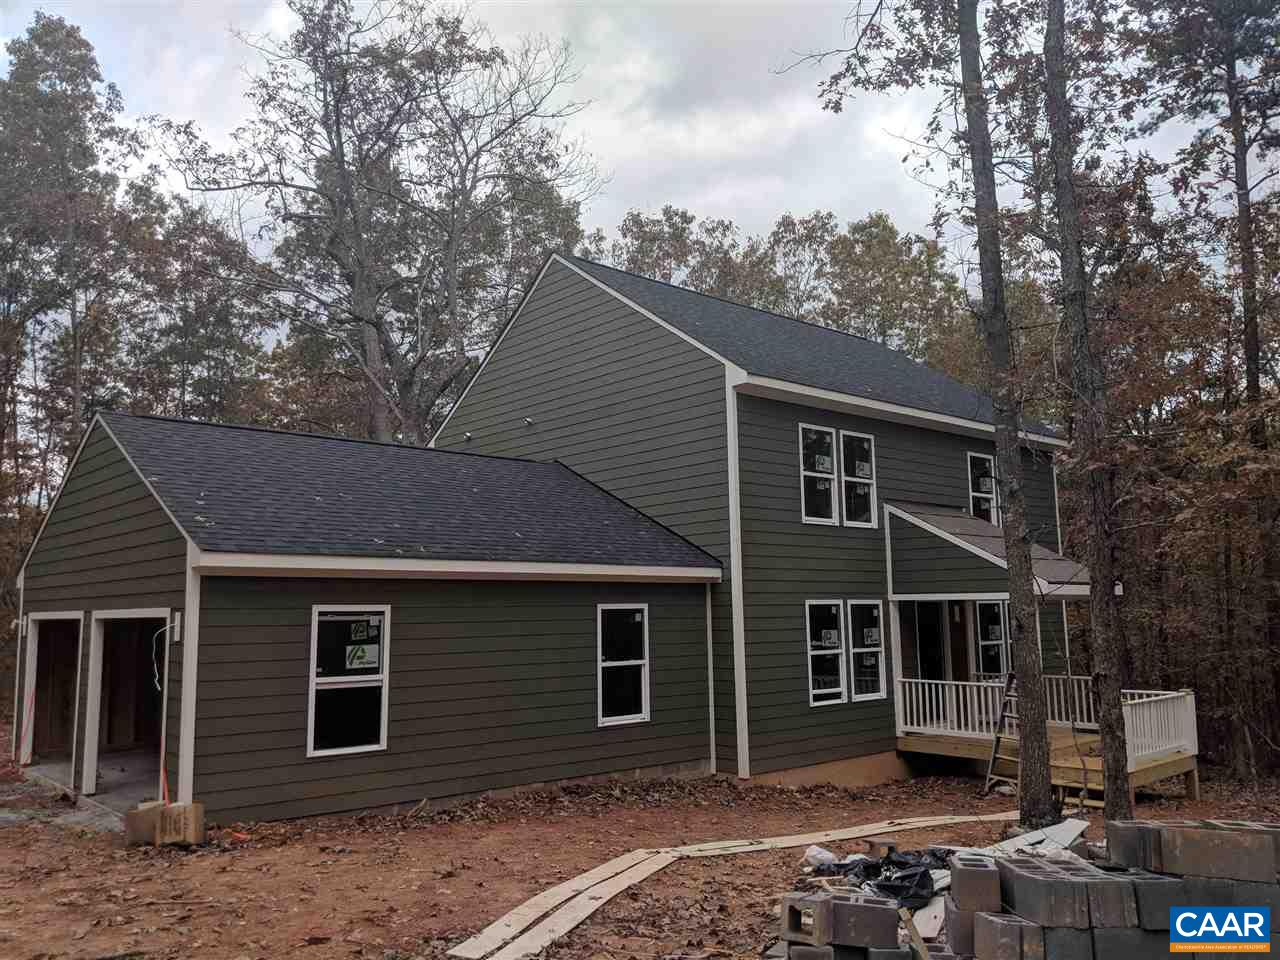 home for sale , MLS #577756, lot 7 Paynes Mill Rd